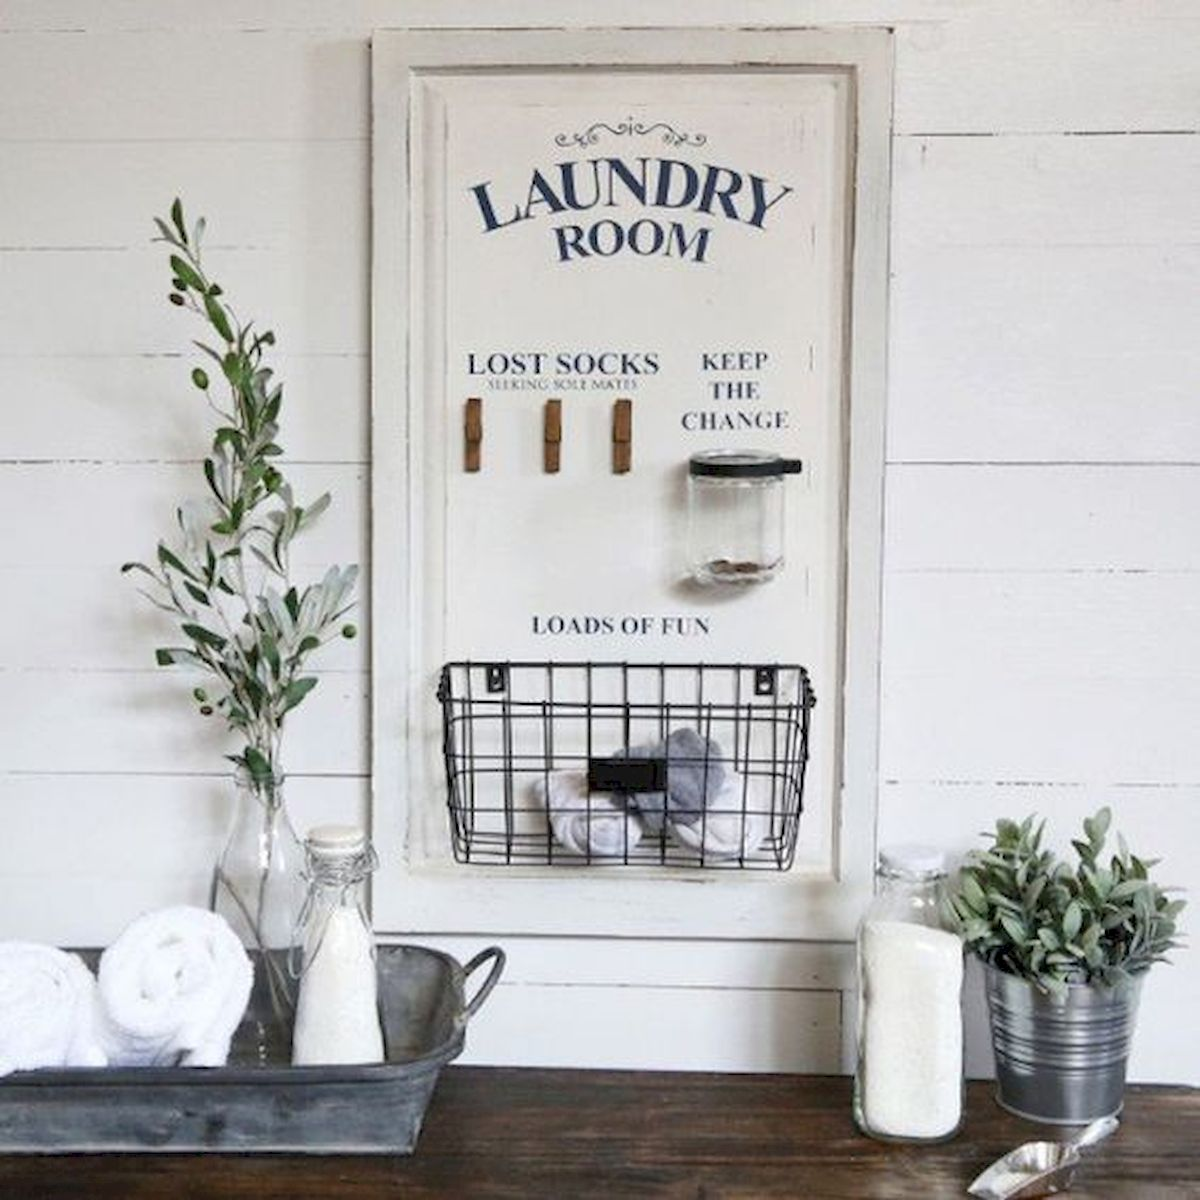 55 Inspiring DIY Farmhouse Decor Ideas On A Budget (27)